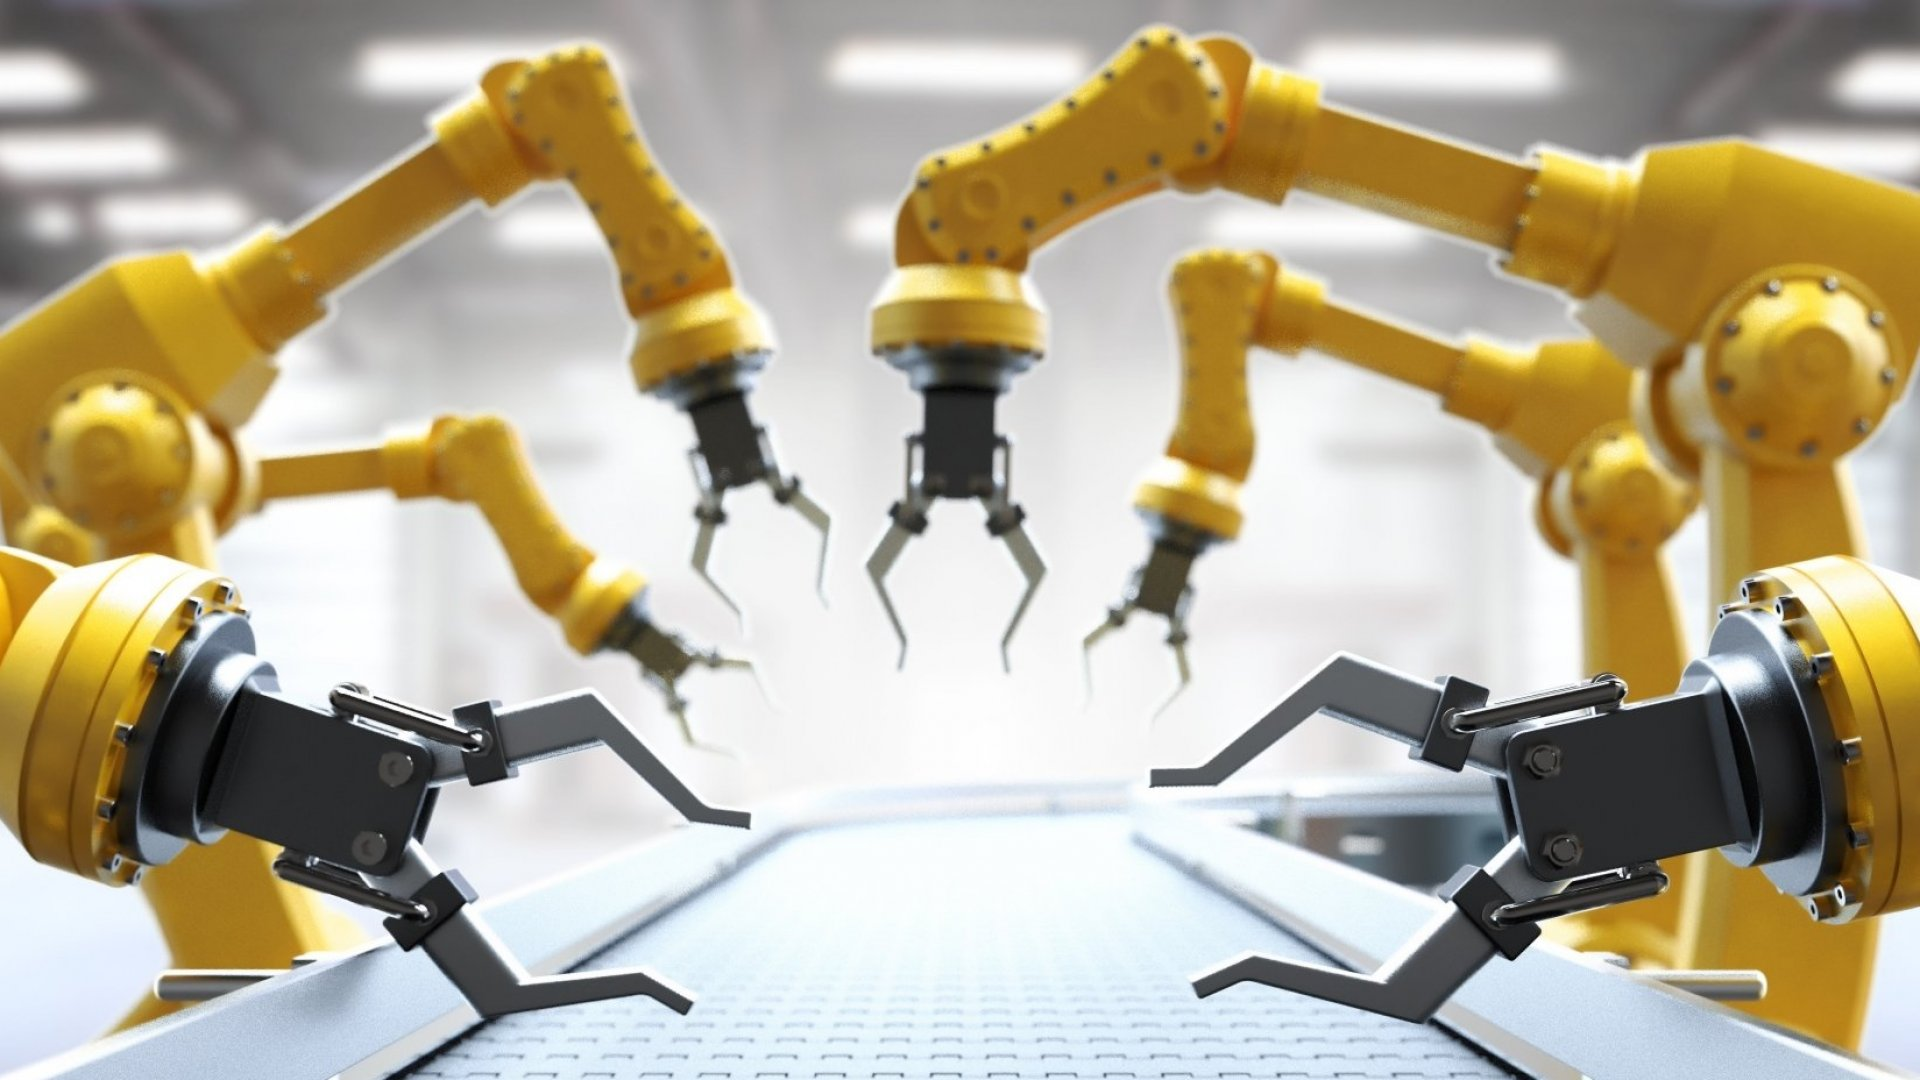 """""""People who live and work in areas where automation is taking place are sickened by the thought of losing their jobs and having no way of providing for themselves or their families,"""" Michael Hicks, the director of Ball State's Center for Business and Economic Research, said."""